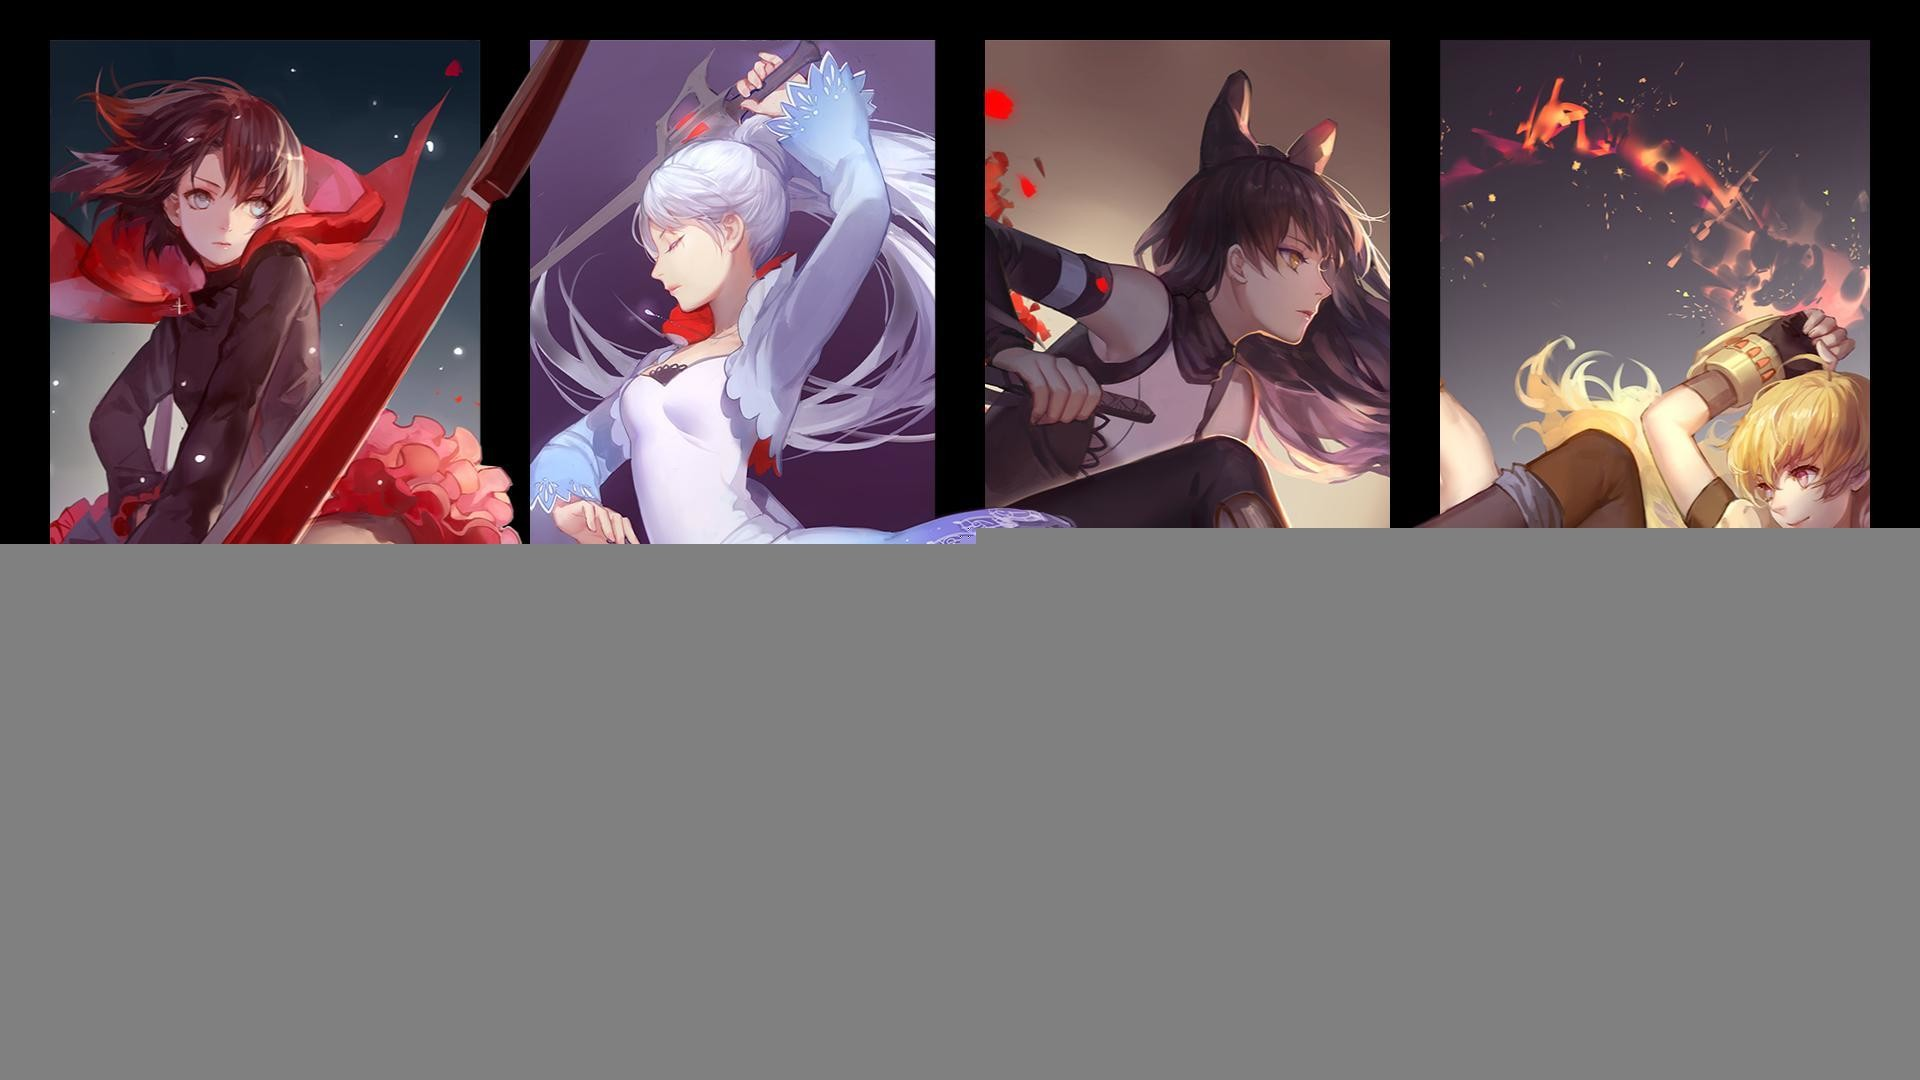 Res: 1920x1080, Wallpaper rwby ruby weiss blake yang rooster teeth wallpapers 1680x1050